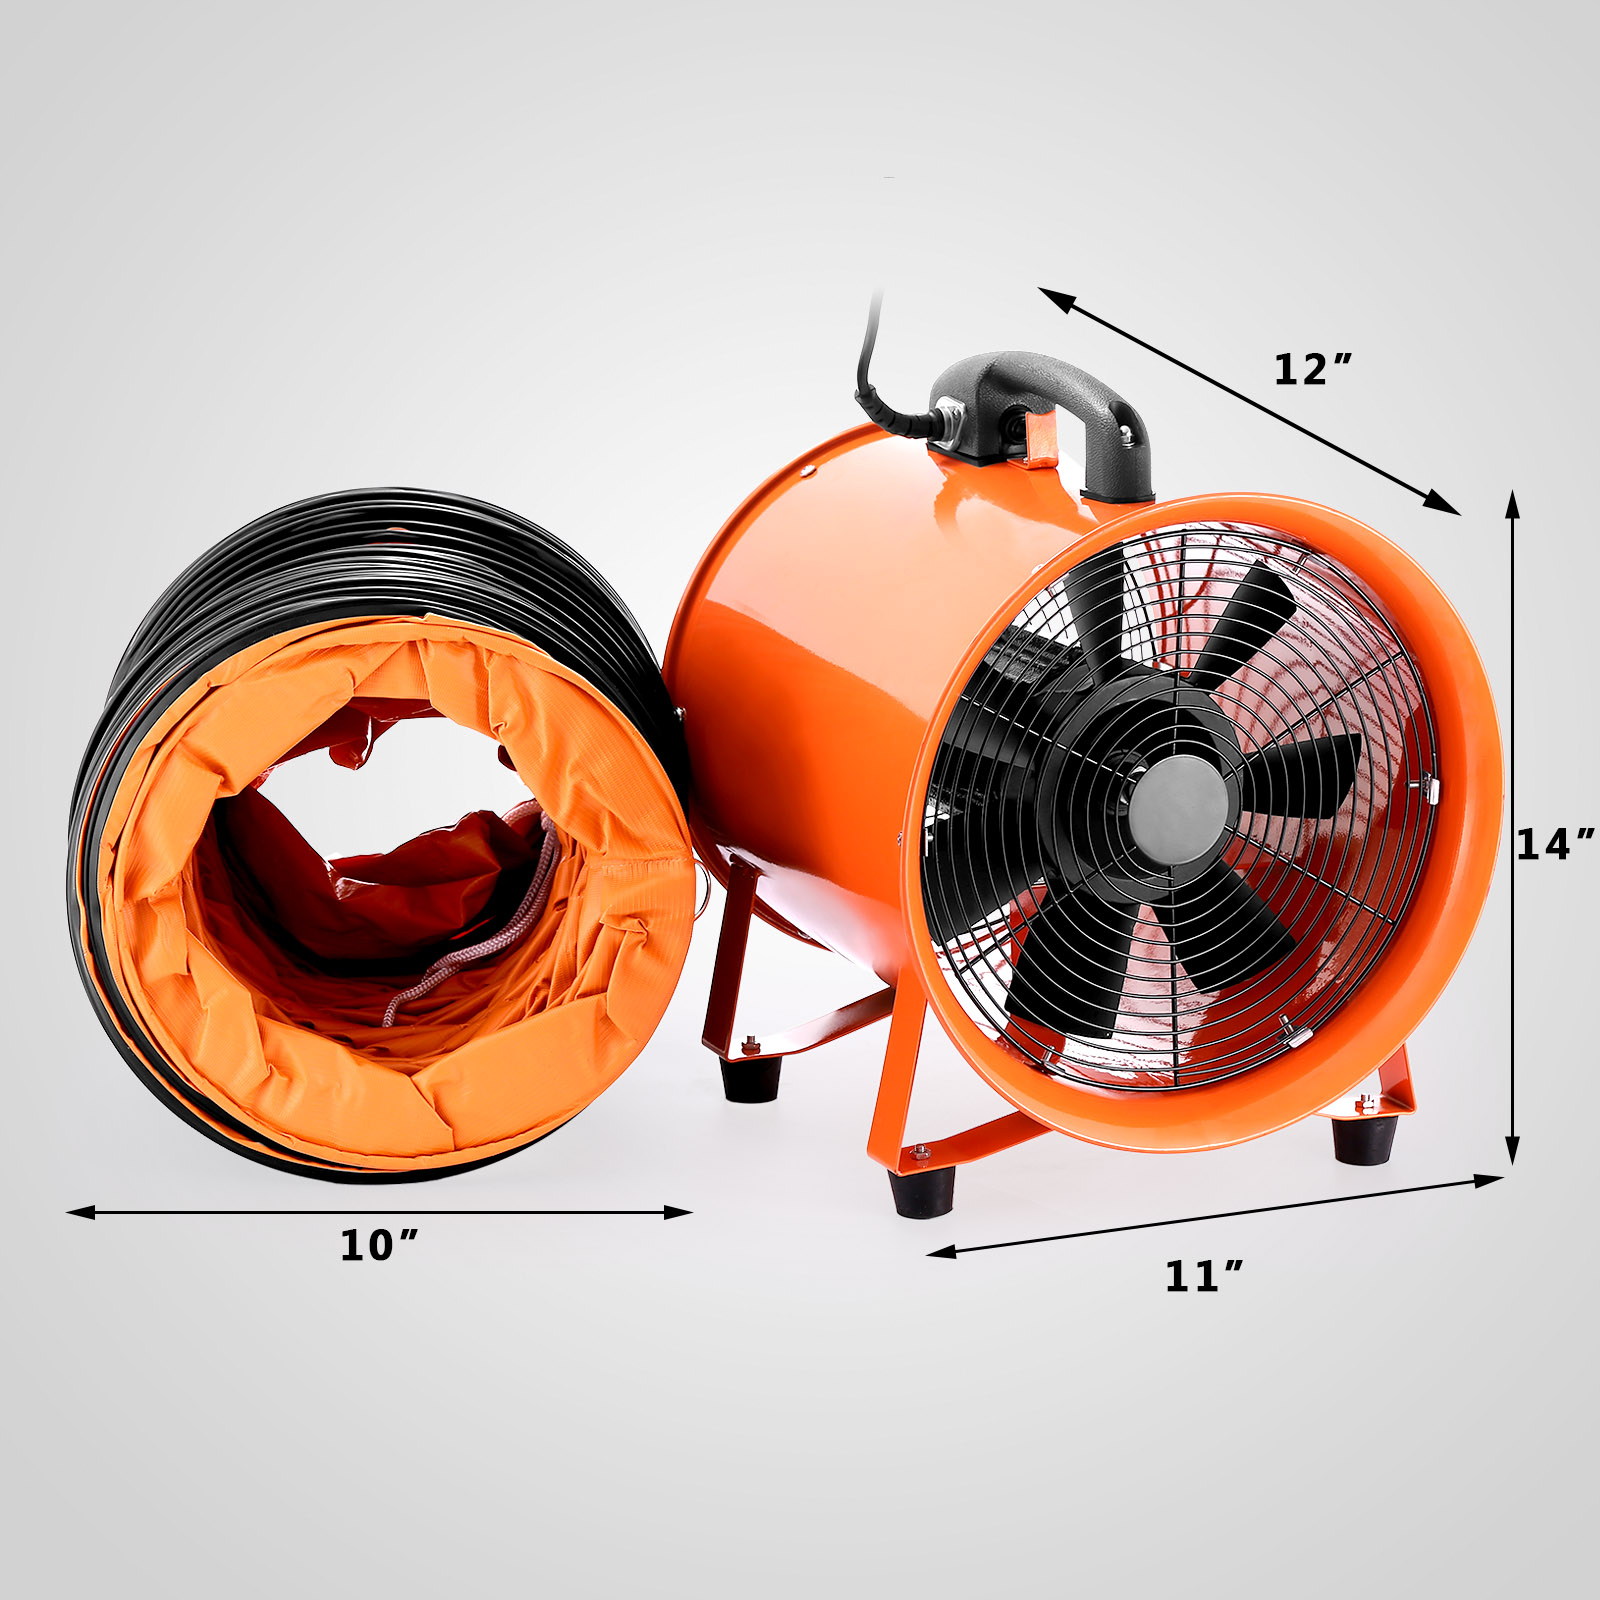 10 Quot Industrial Extractor Fan Blower W Duct Hose Rubber